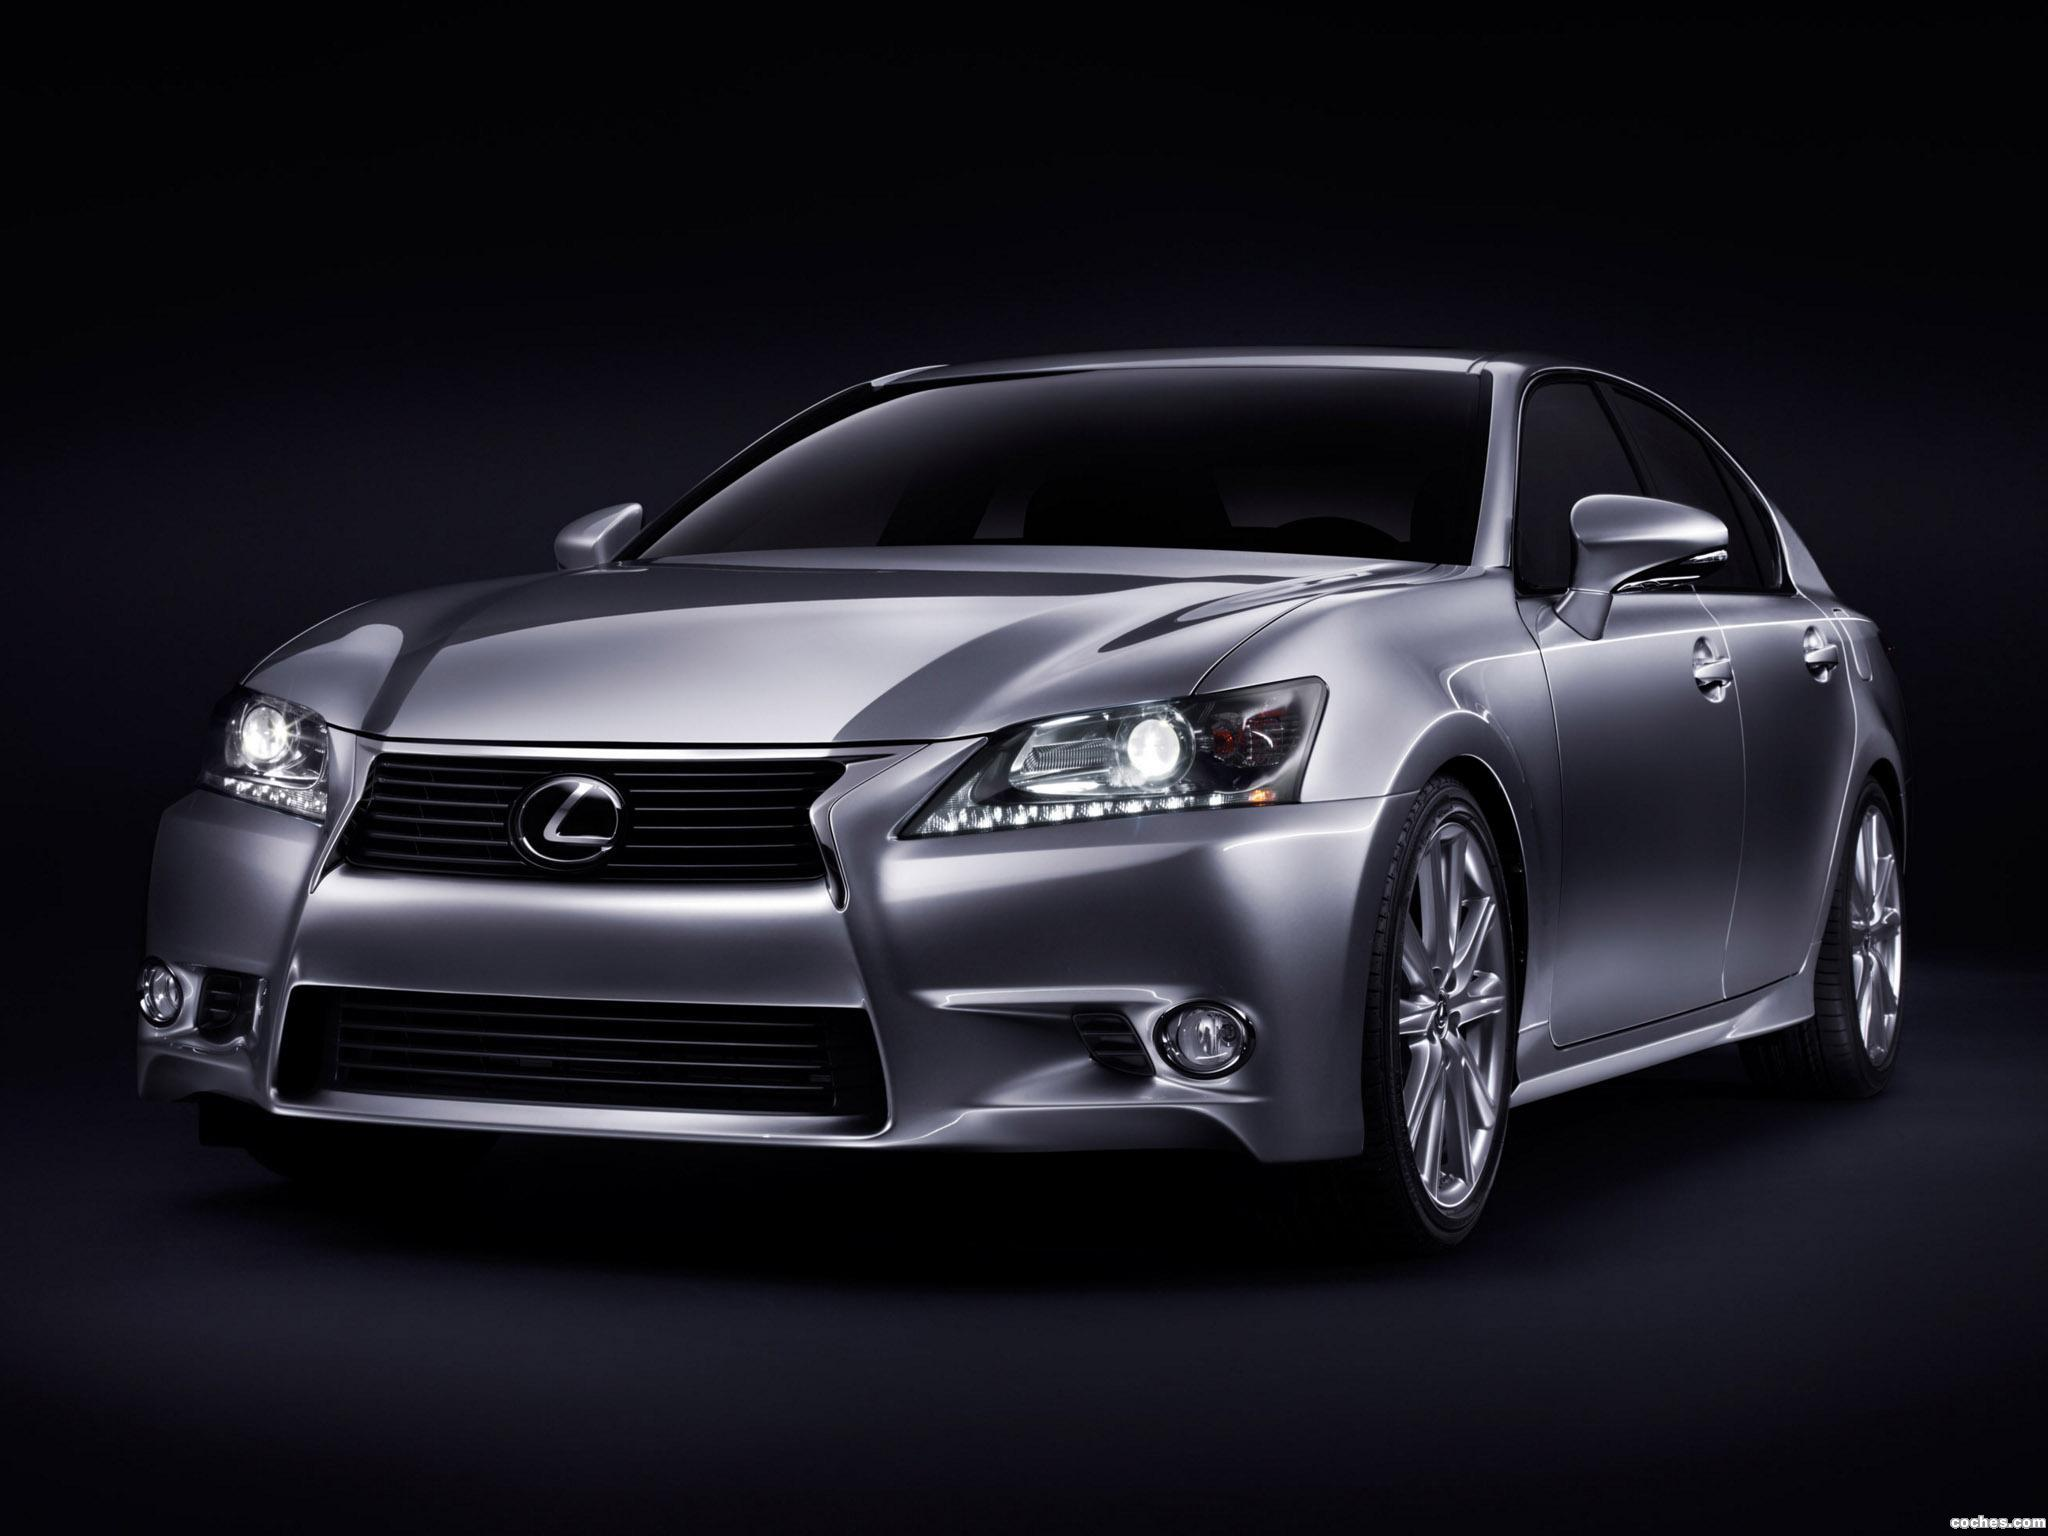 fotos de lexus gs 350 2011 foto 16. Black Bedroom Furniture Sets. Home Design Ideas